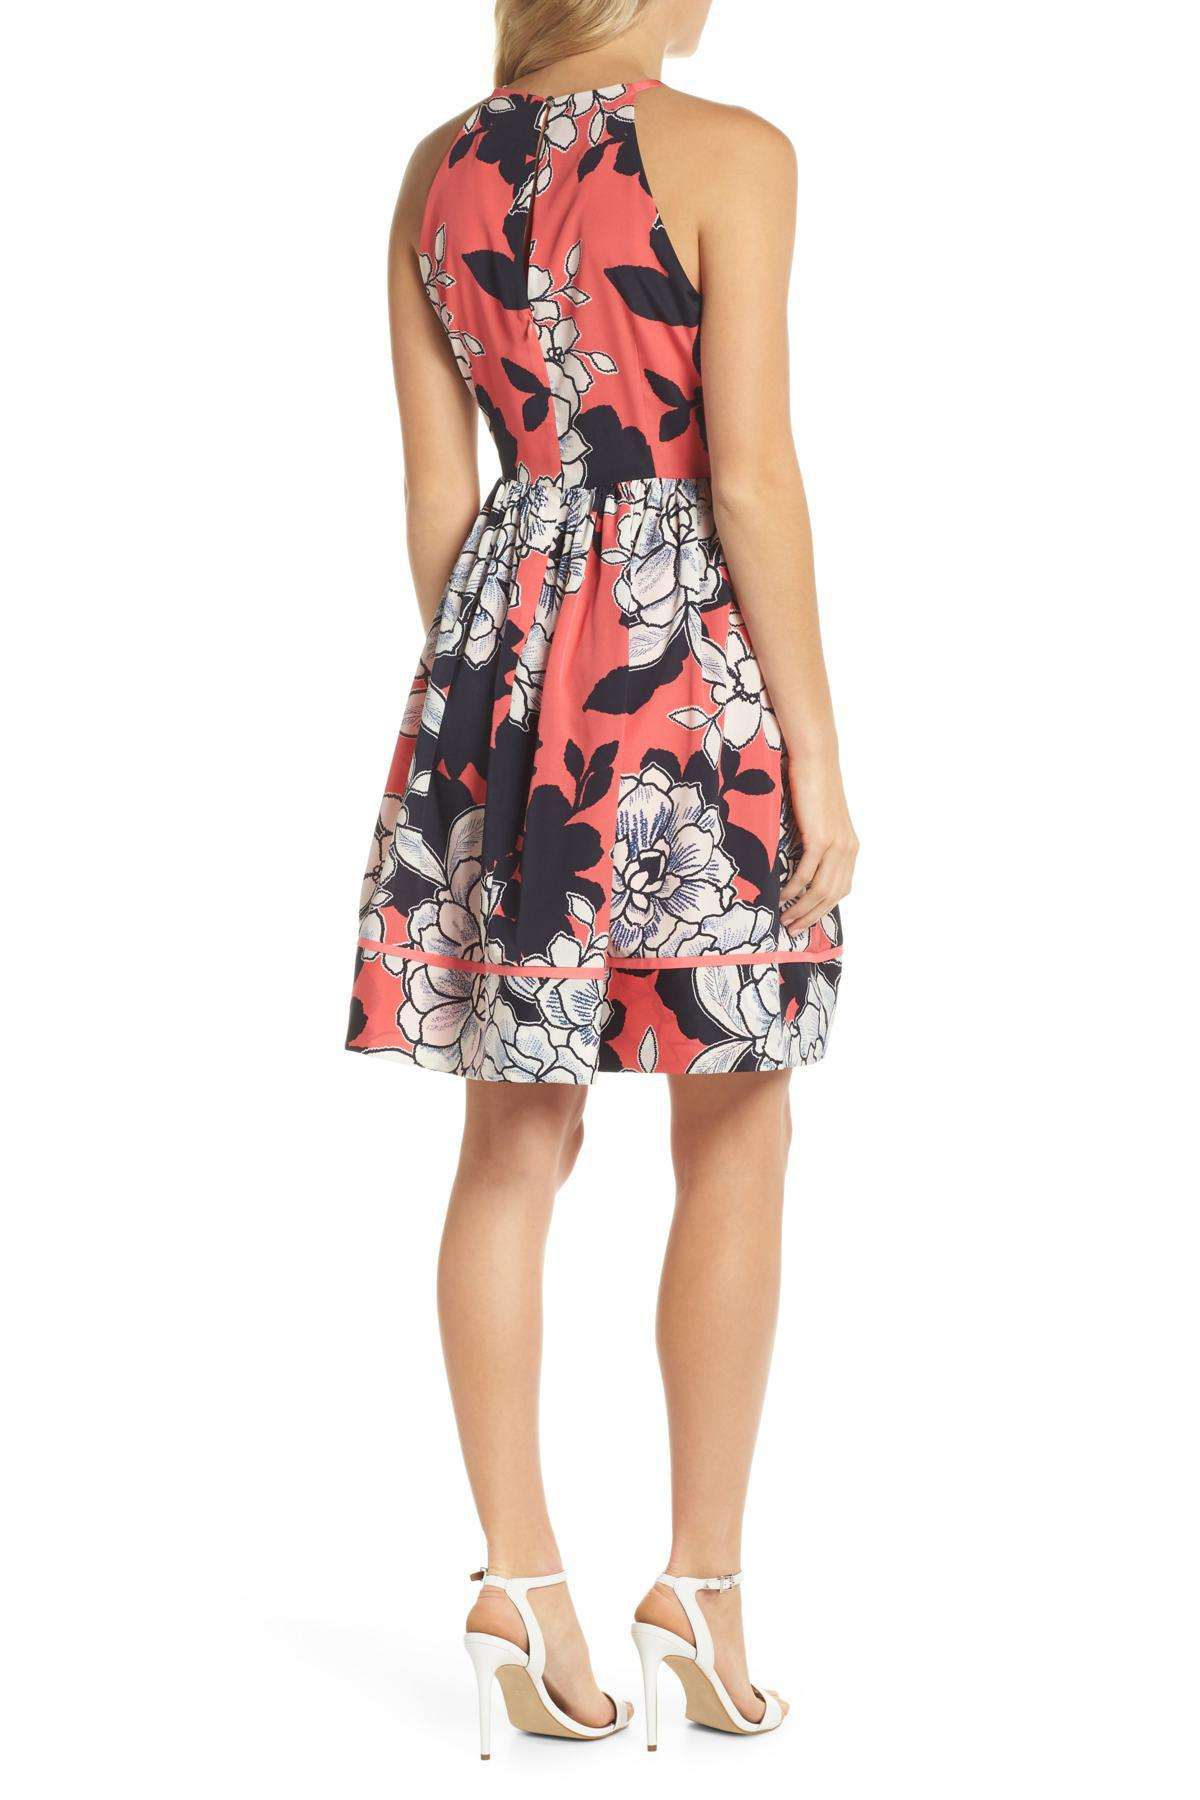 Vince Camuto Floral Fit And Flare Dress Regular Amp Petite